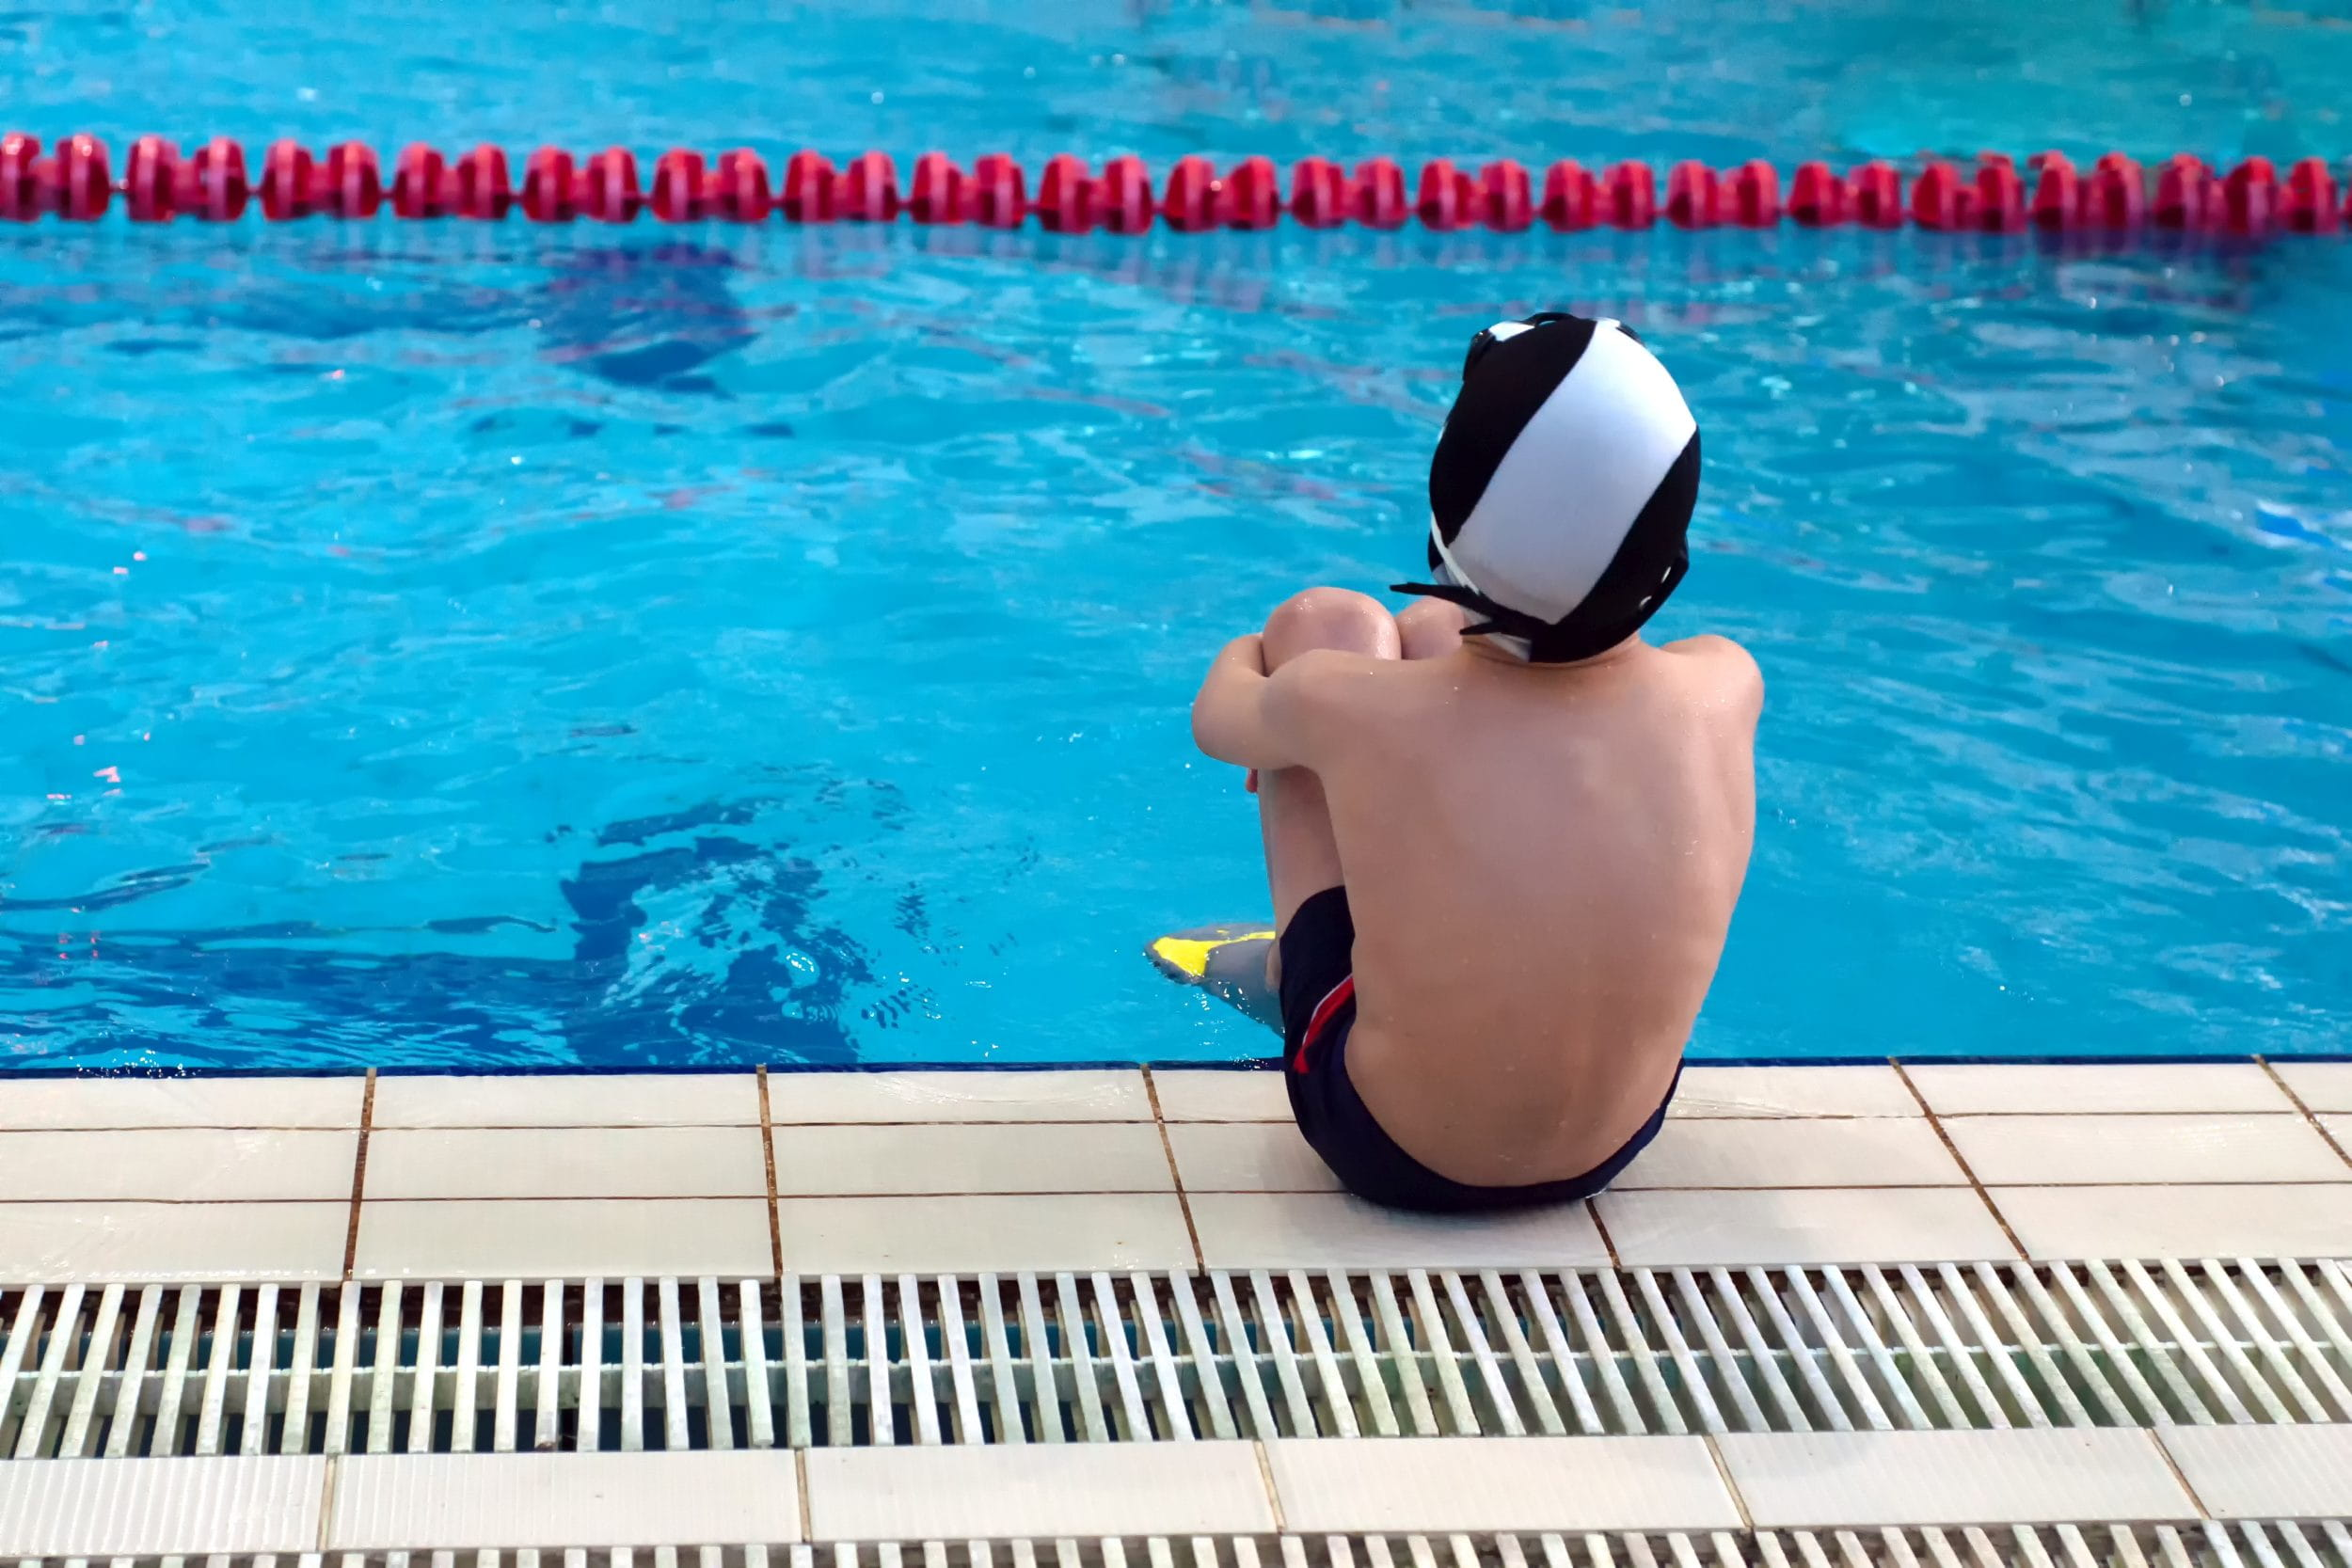 Young boy sitting at the side of the swimming pool looking sad ((c) Yekatseryna – stock.adobe.com)